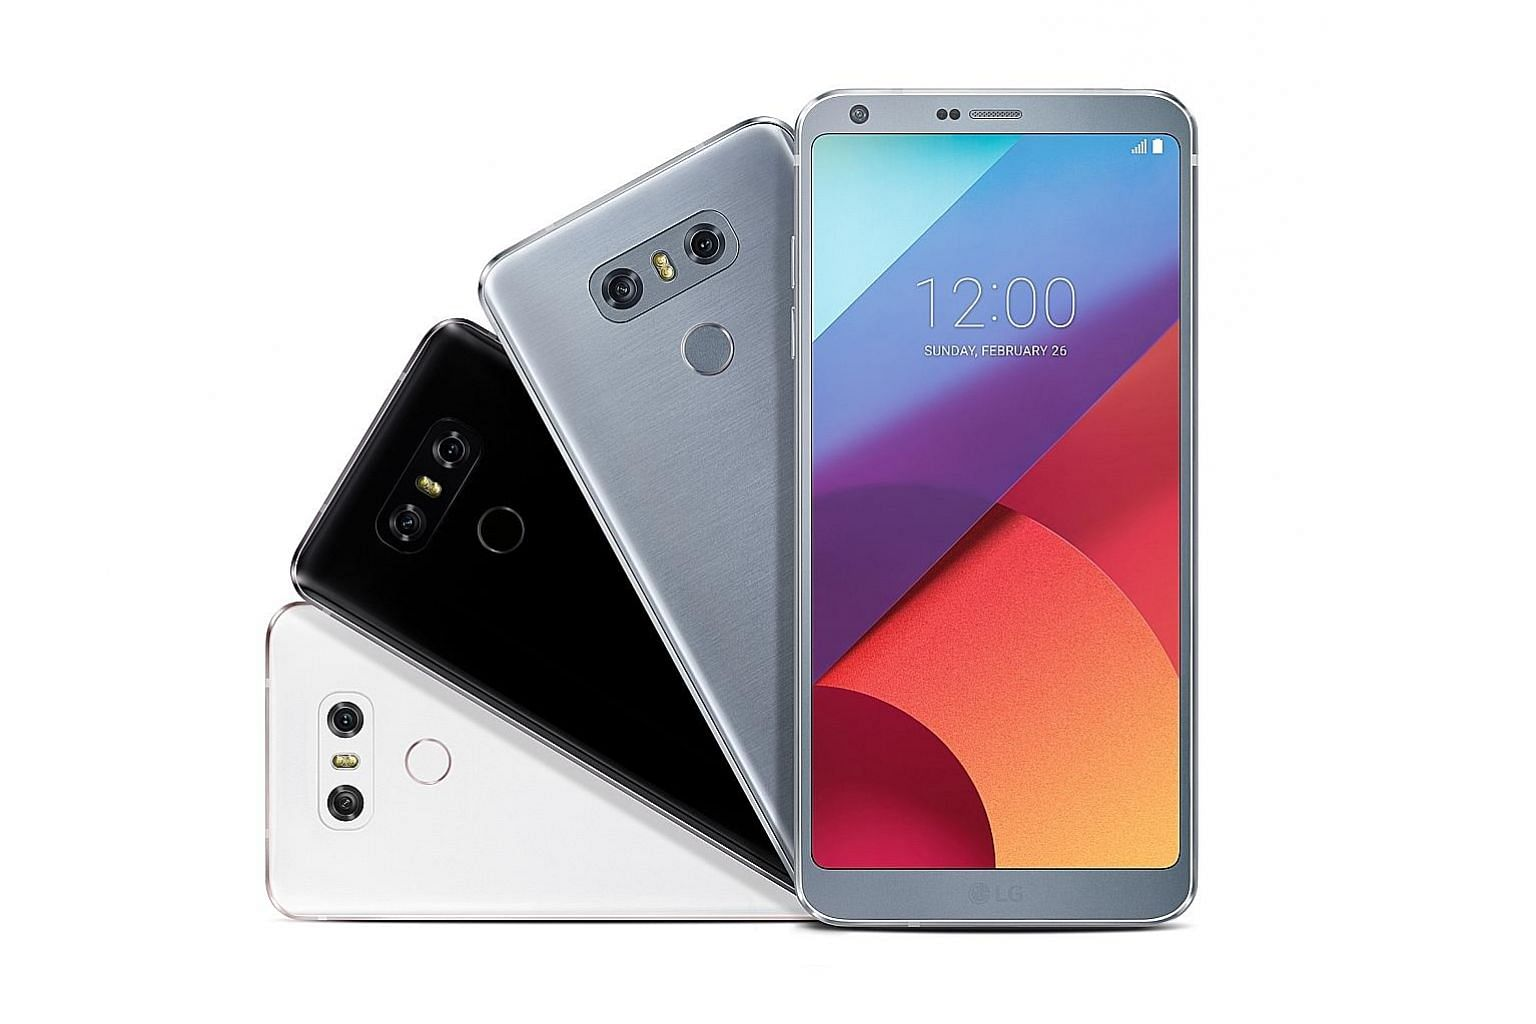 LG continues its dual-camera trend on the G6, slapping two 13-megapixel cameras on the new smartphone's rear. One lens is used for a standard viewing angle and the other is for a 125-degree wide-angle view